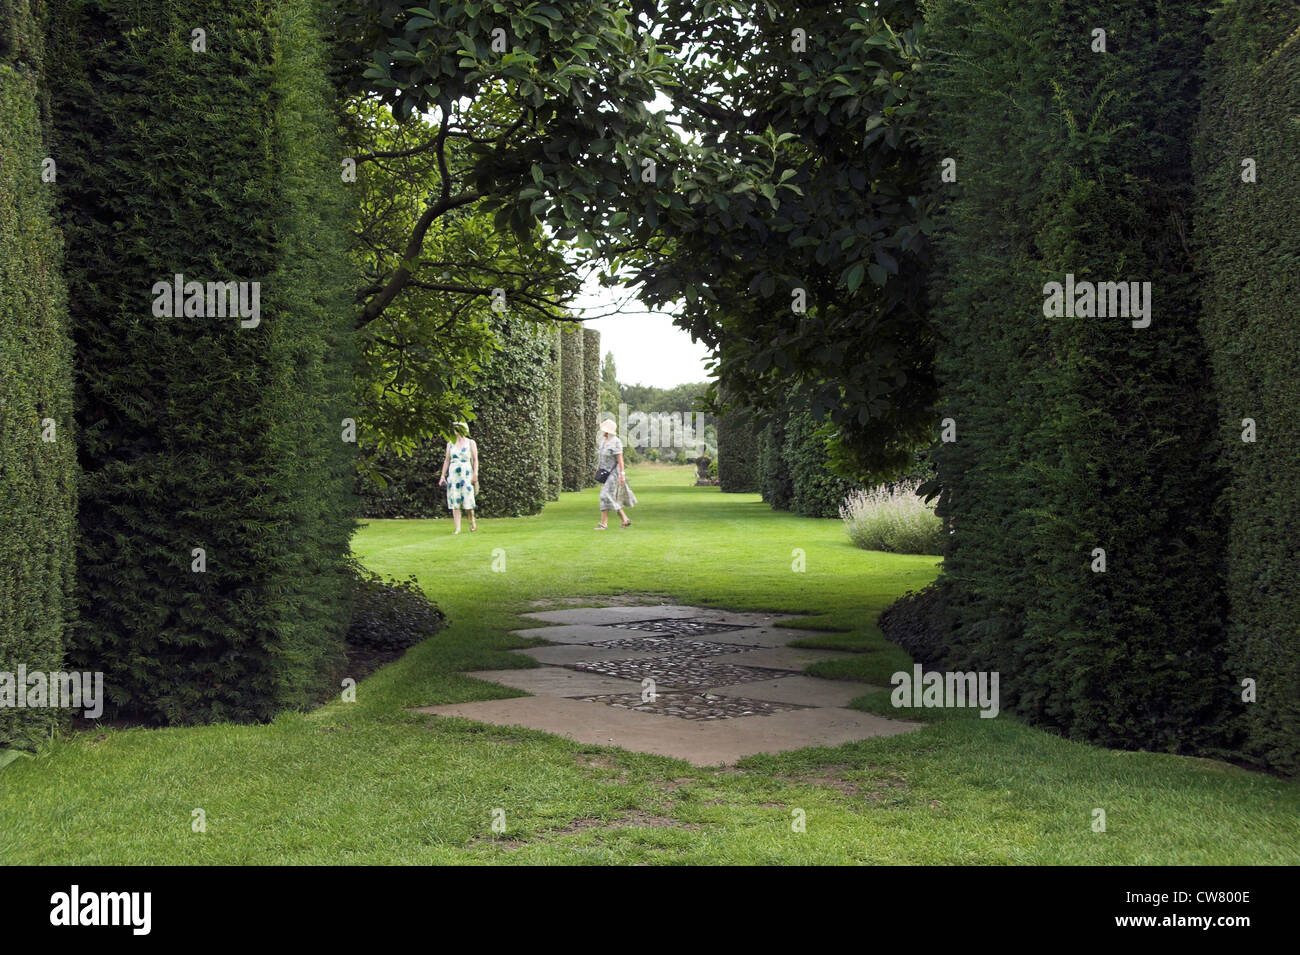 Visitors in the Ilex Avenue, Arley Hall and Gardens, Cheshire, UK - Stock Image